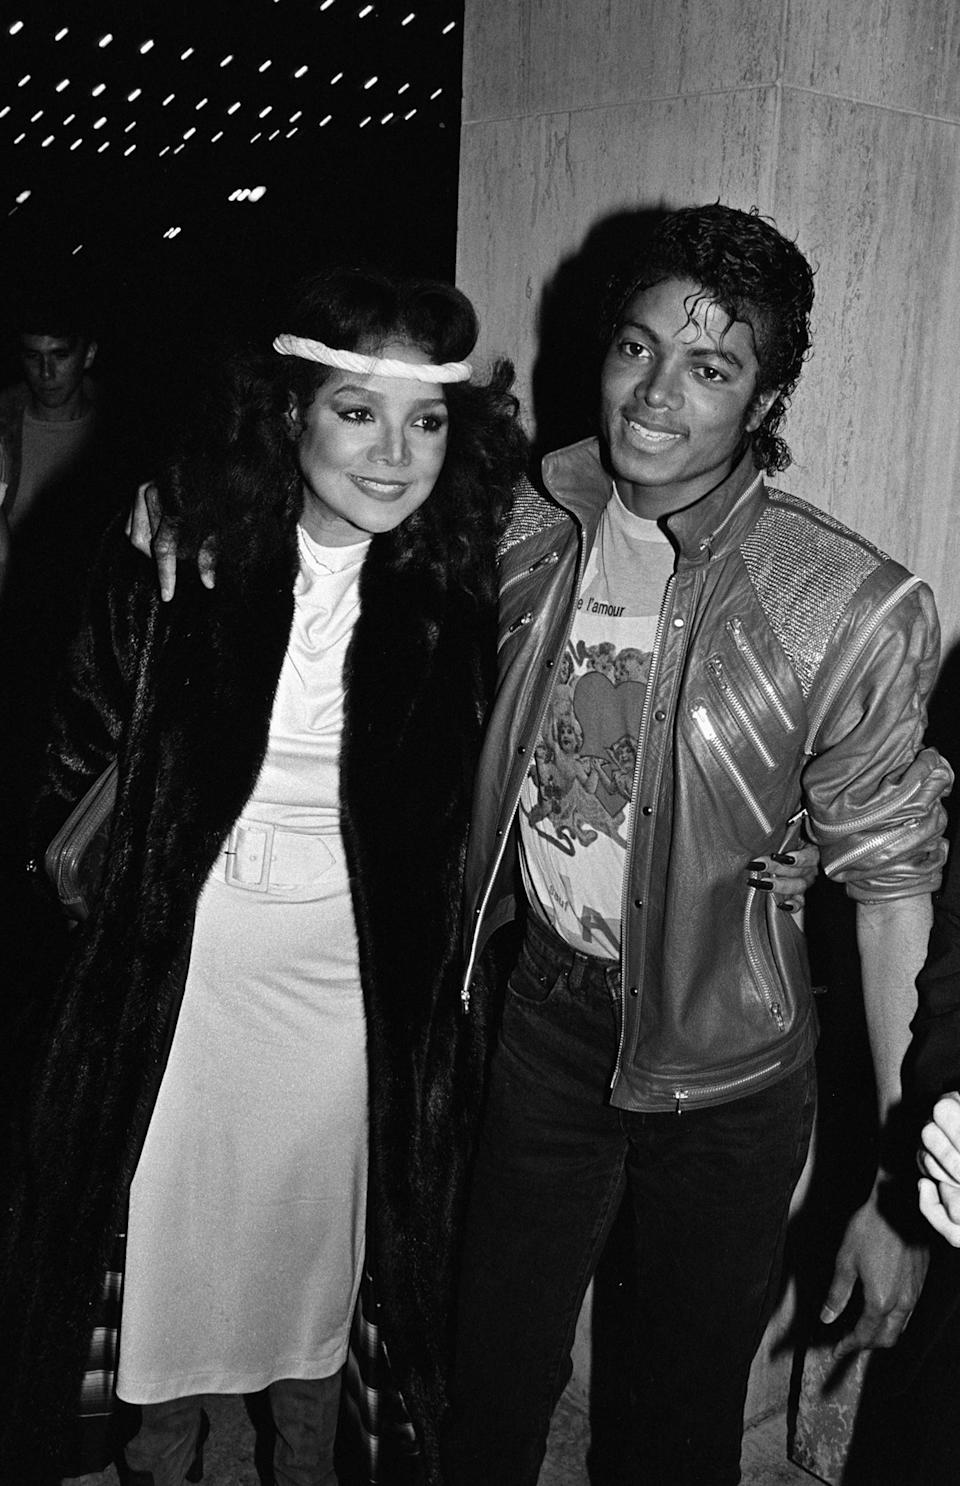 Michael and LaToya pictured in 1983. Source: Getty